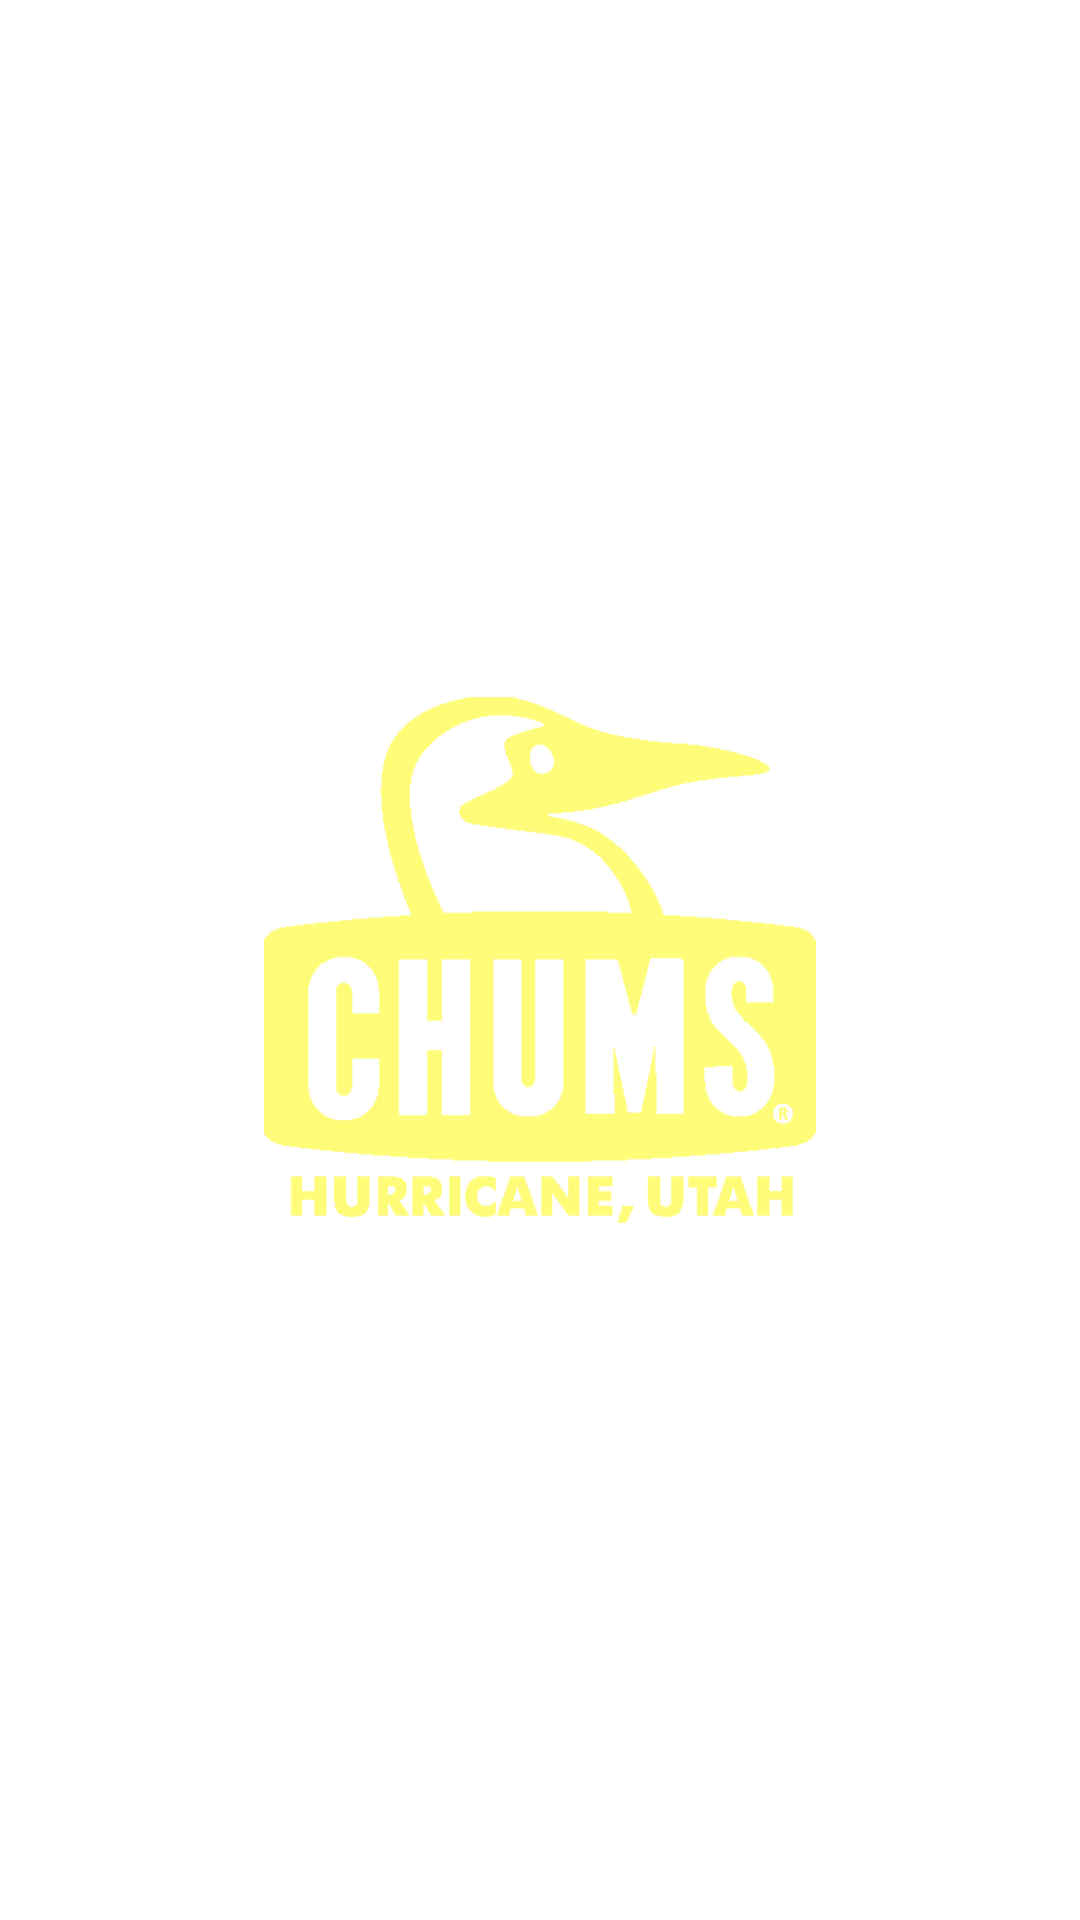 chums45 - 50 CHUMS HQ Smartphone Wallpaper Collection